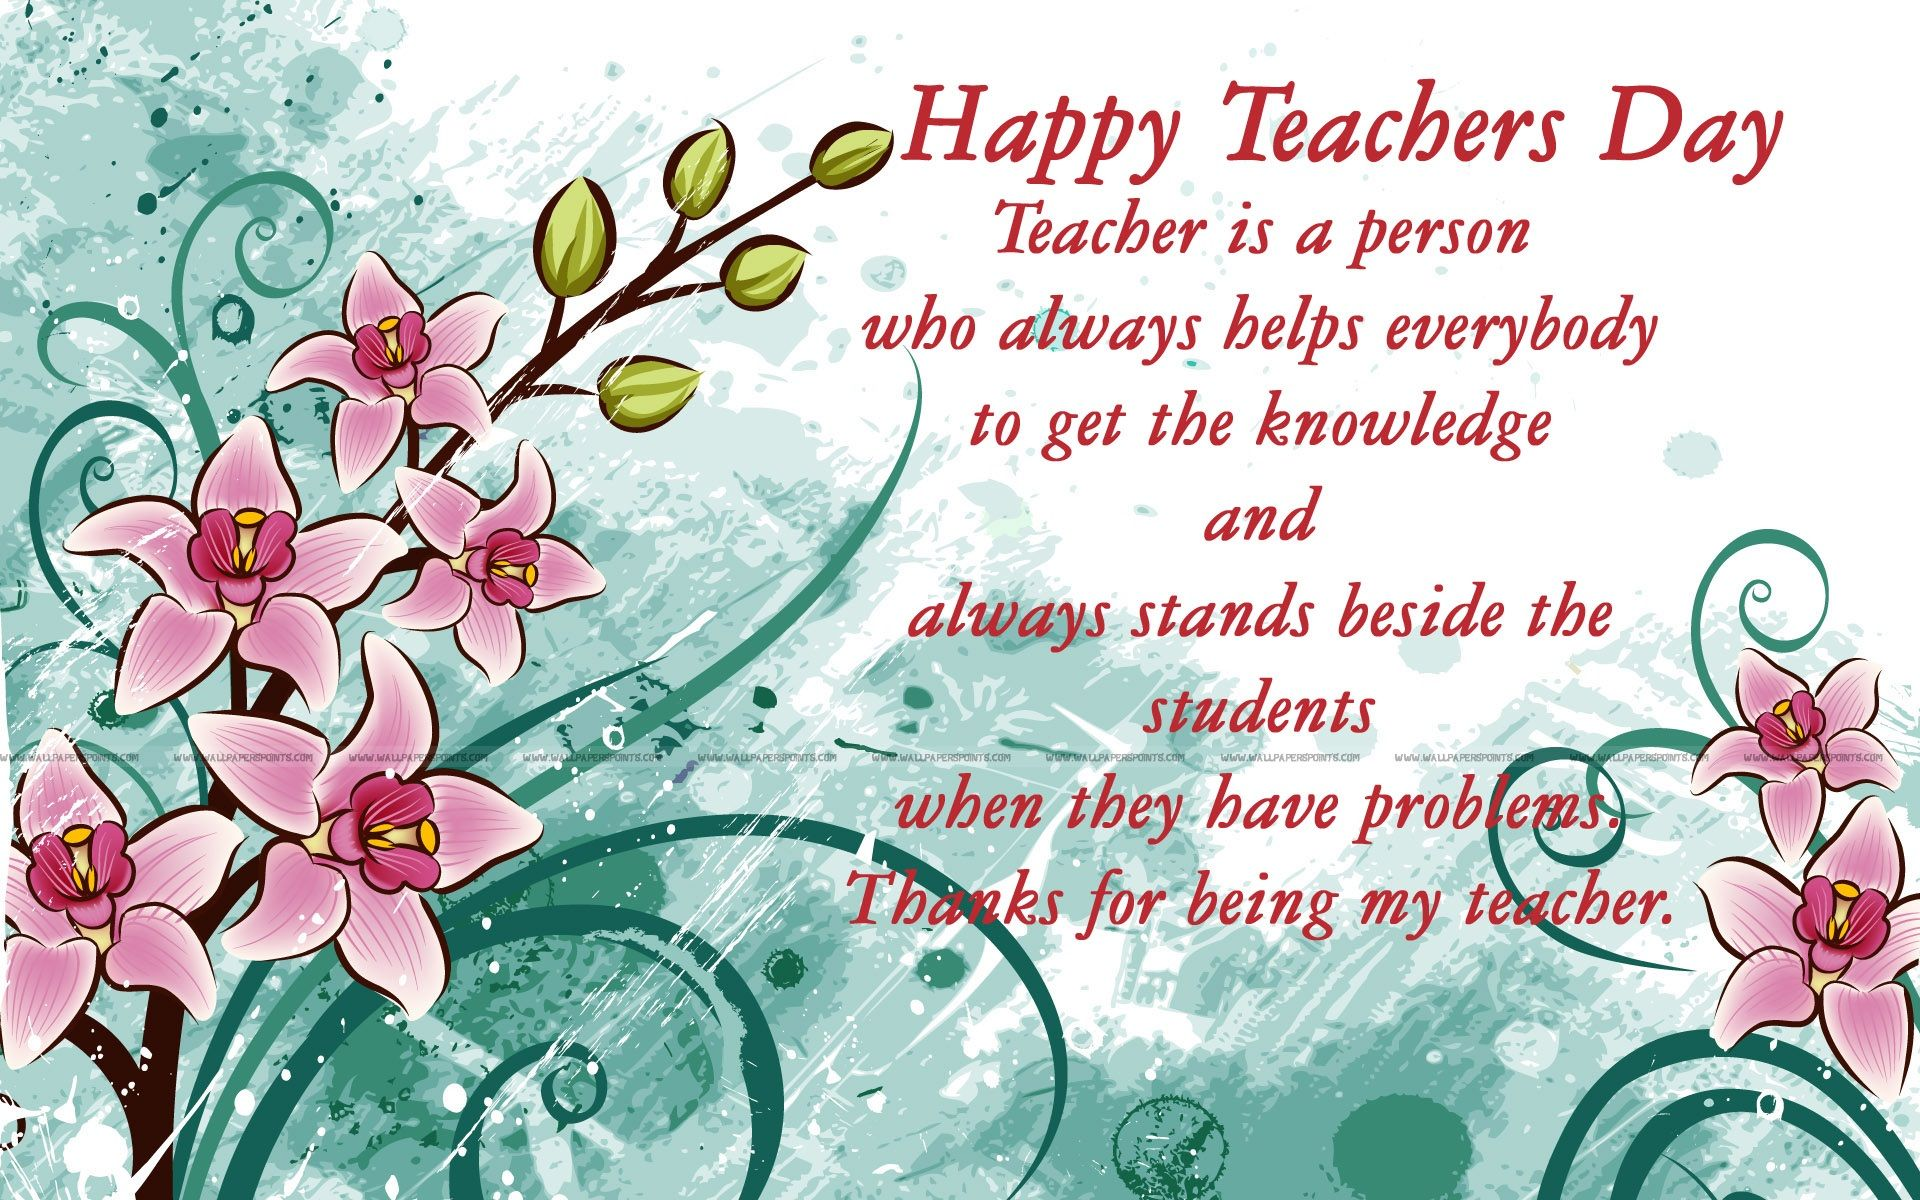 Happy Teachers Day Quotes Images Pictures Photos Hd Wallpapers For Students 2015 Happy Teachers Day Wishes Teachers Day Wishes Happy Teachers Day